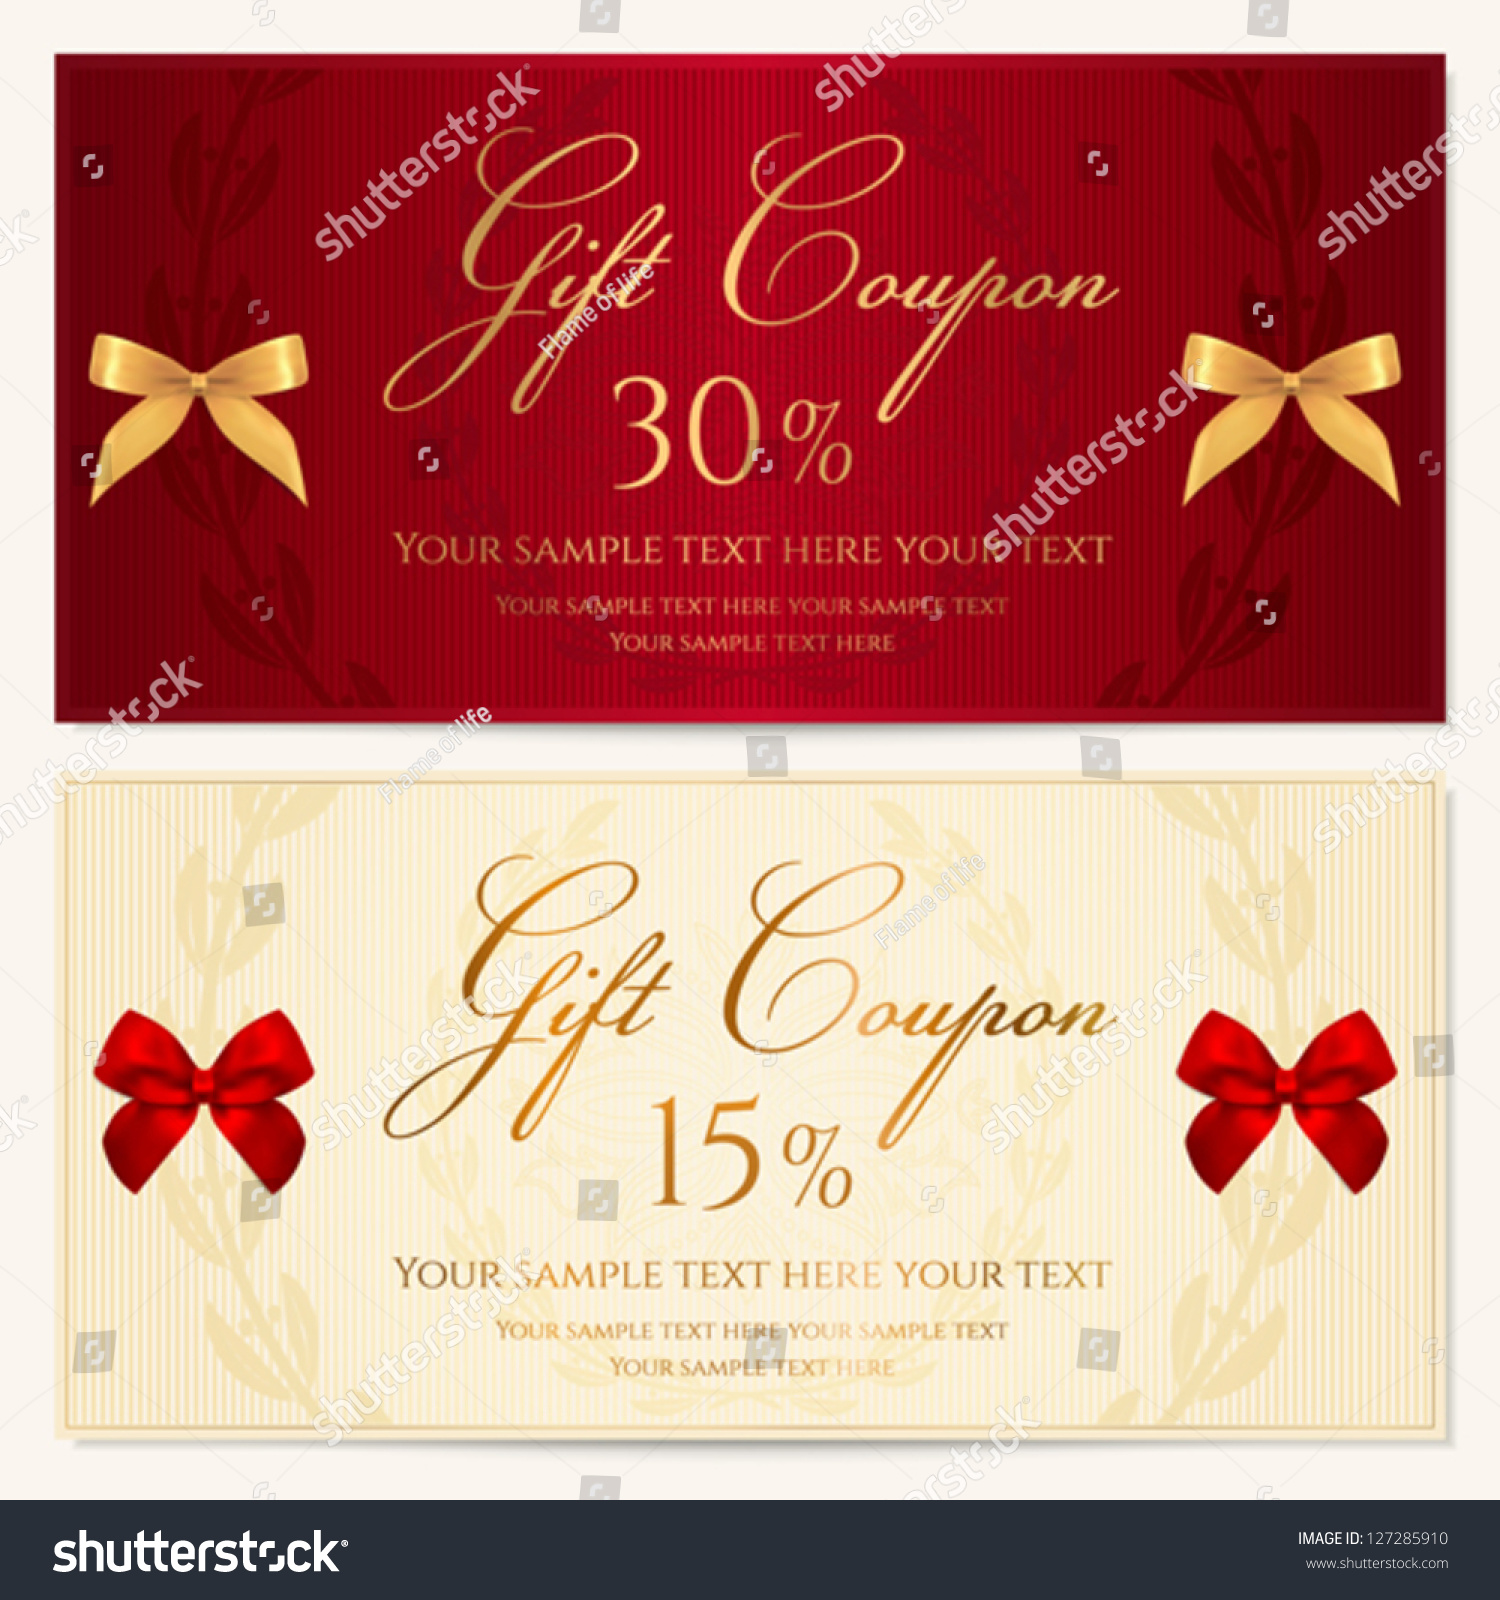 Voucher Template Border Red Bow Ribbons Stock Vector (Royalty Free ...